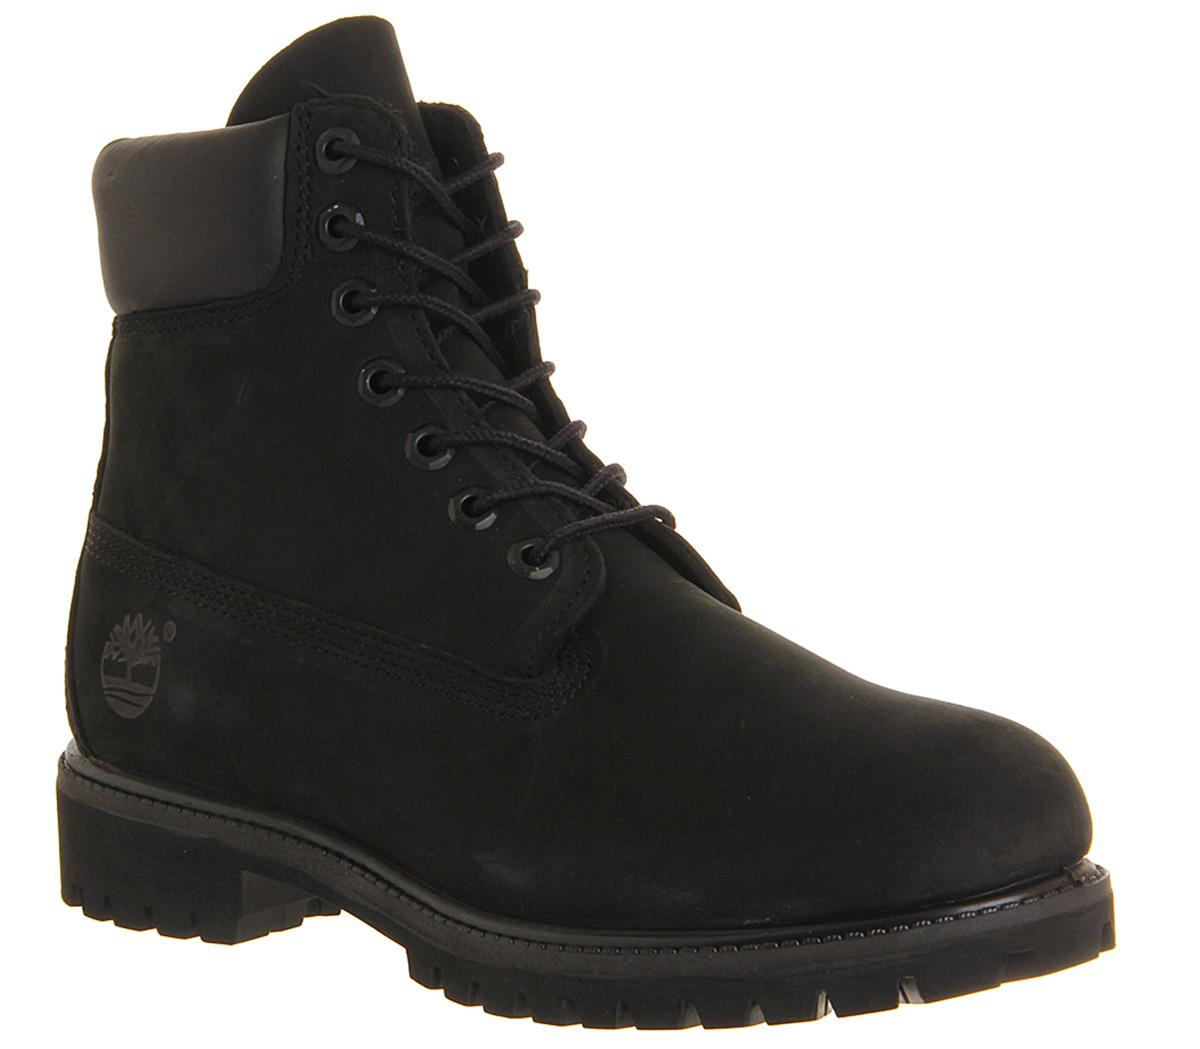 6 Inch Buck Boots M